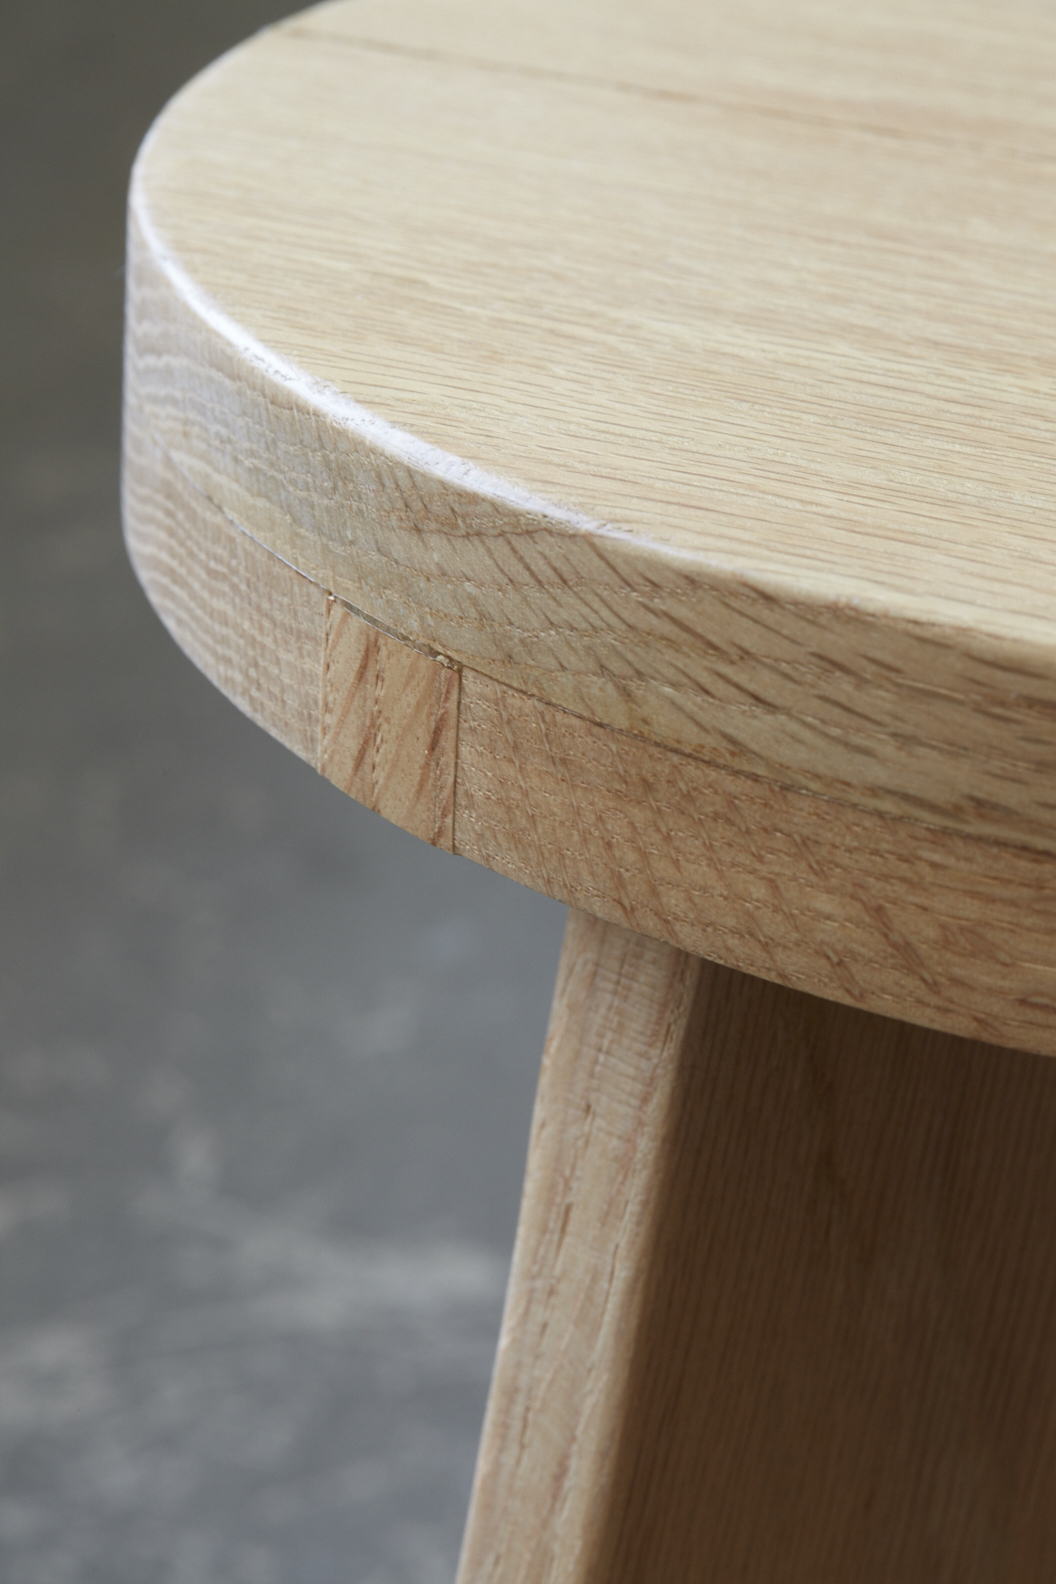 C-S Stool Joinery